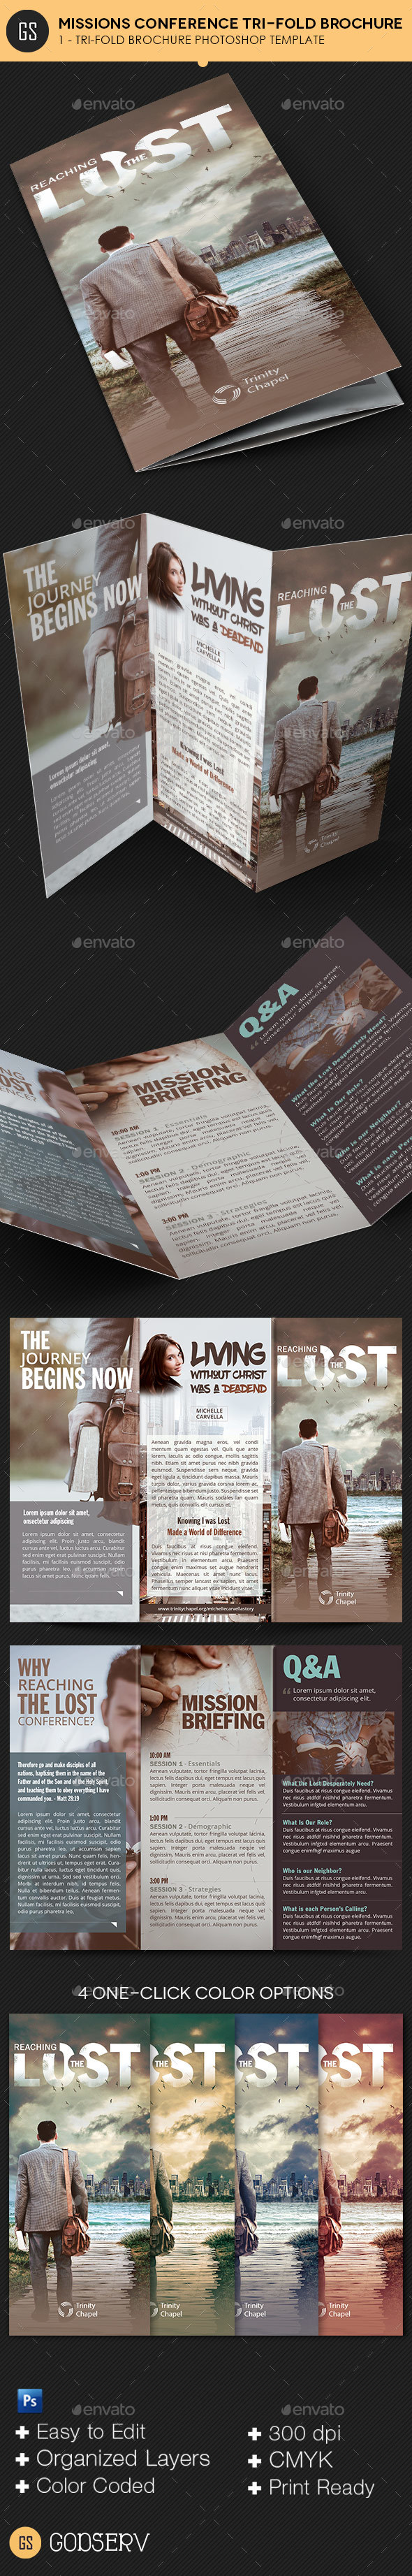 Missions Conference Tri-Fold Brochure Template - Informational Brochures